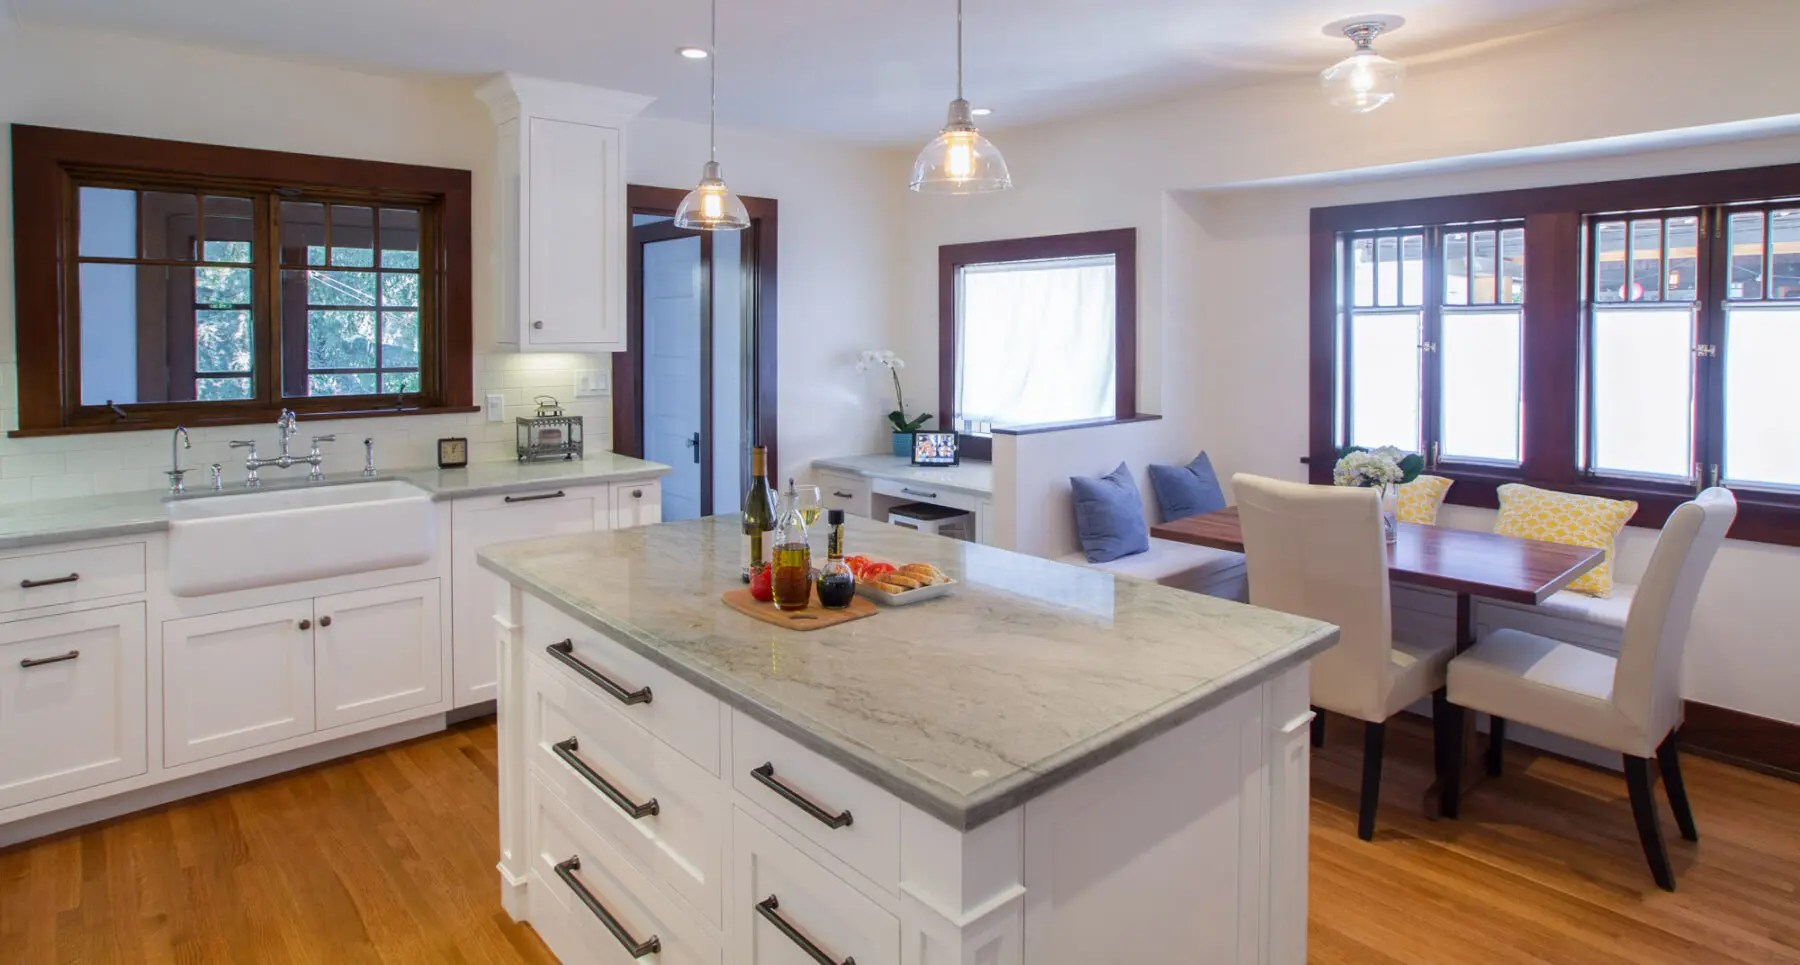 This 1910 Craftsman Kitchen Remodel In White And Period